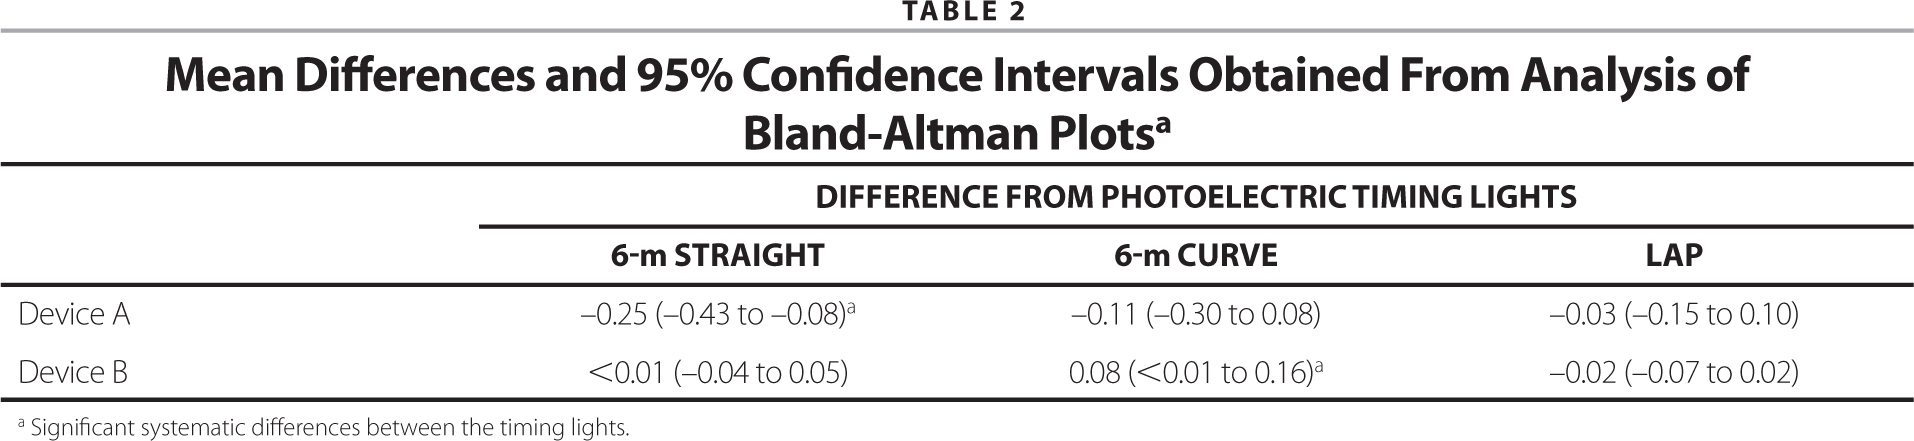 Mean Differences and 95% Confidence Intervals Obtained From Analysis of Bland-Altman Plotsa